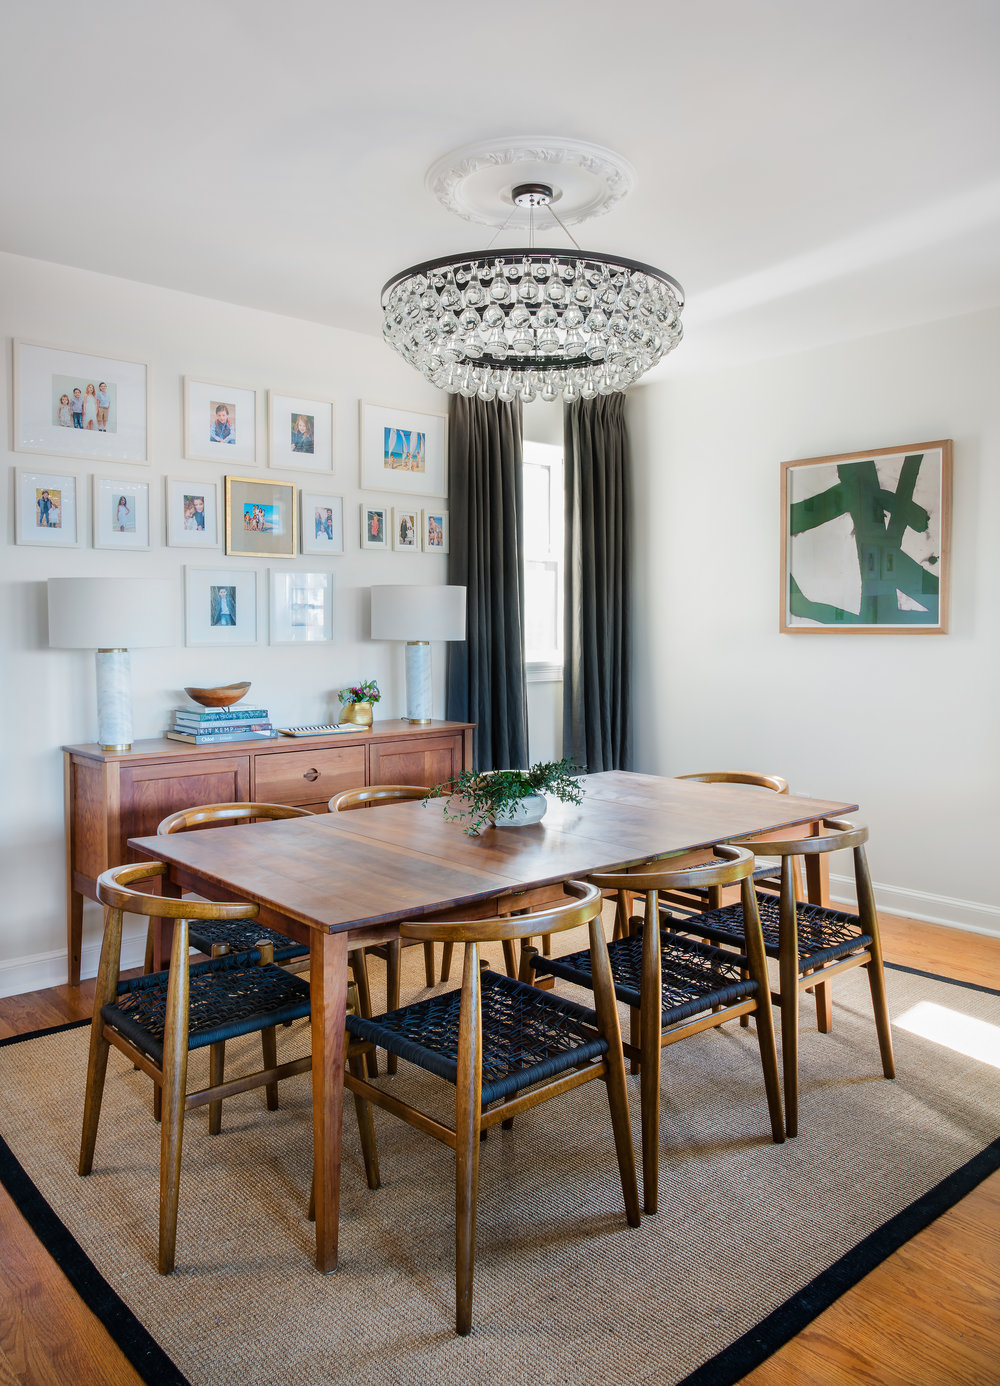 table ( similar here ) //  table lamps  //  rug //  dining chairs